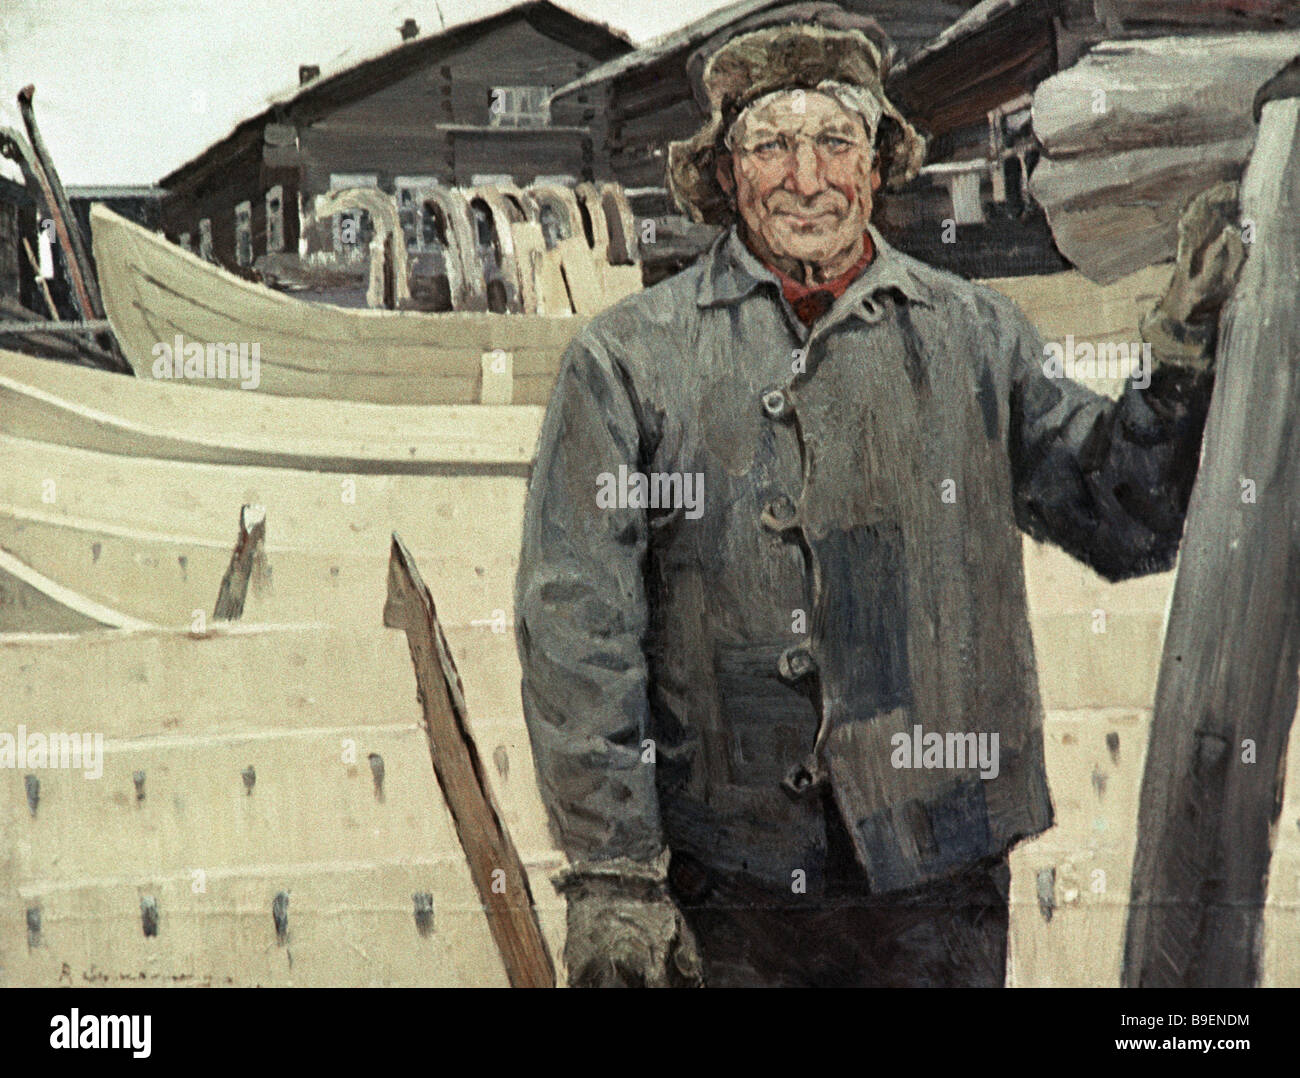 Rem Yermolin Boat Maker Malyshev Exhibited at the exposition Artists of the North - Stock Image